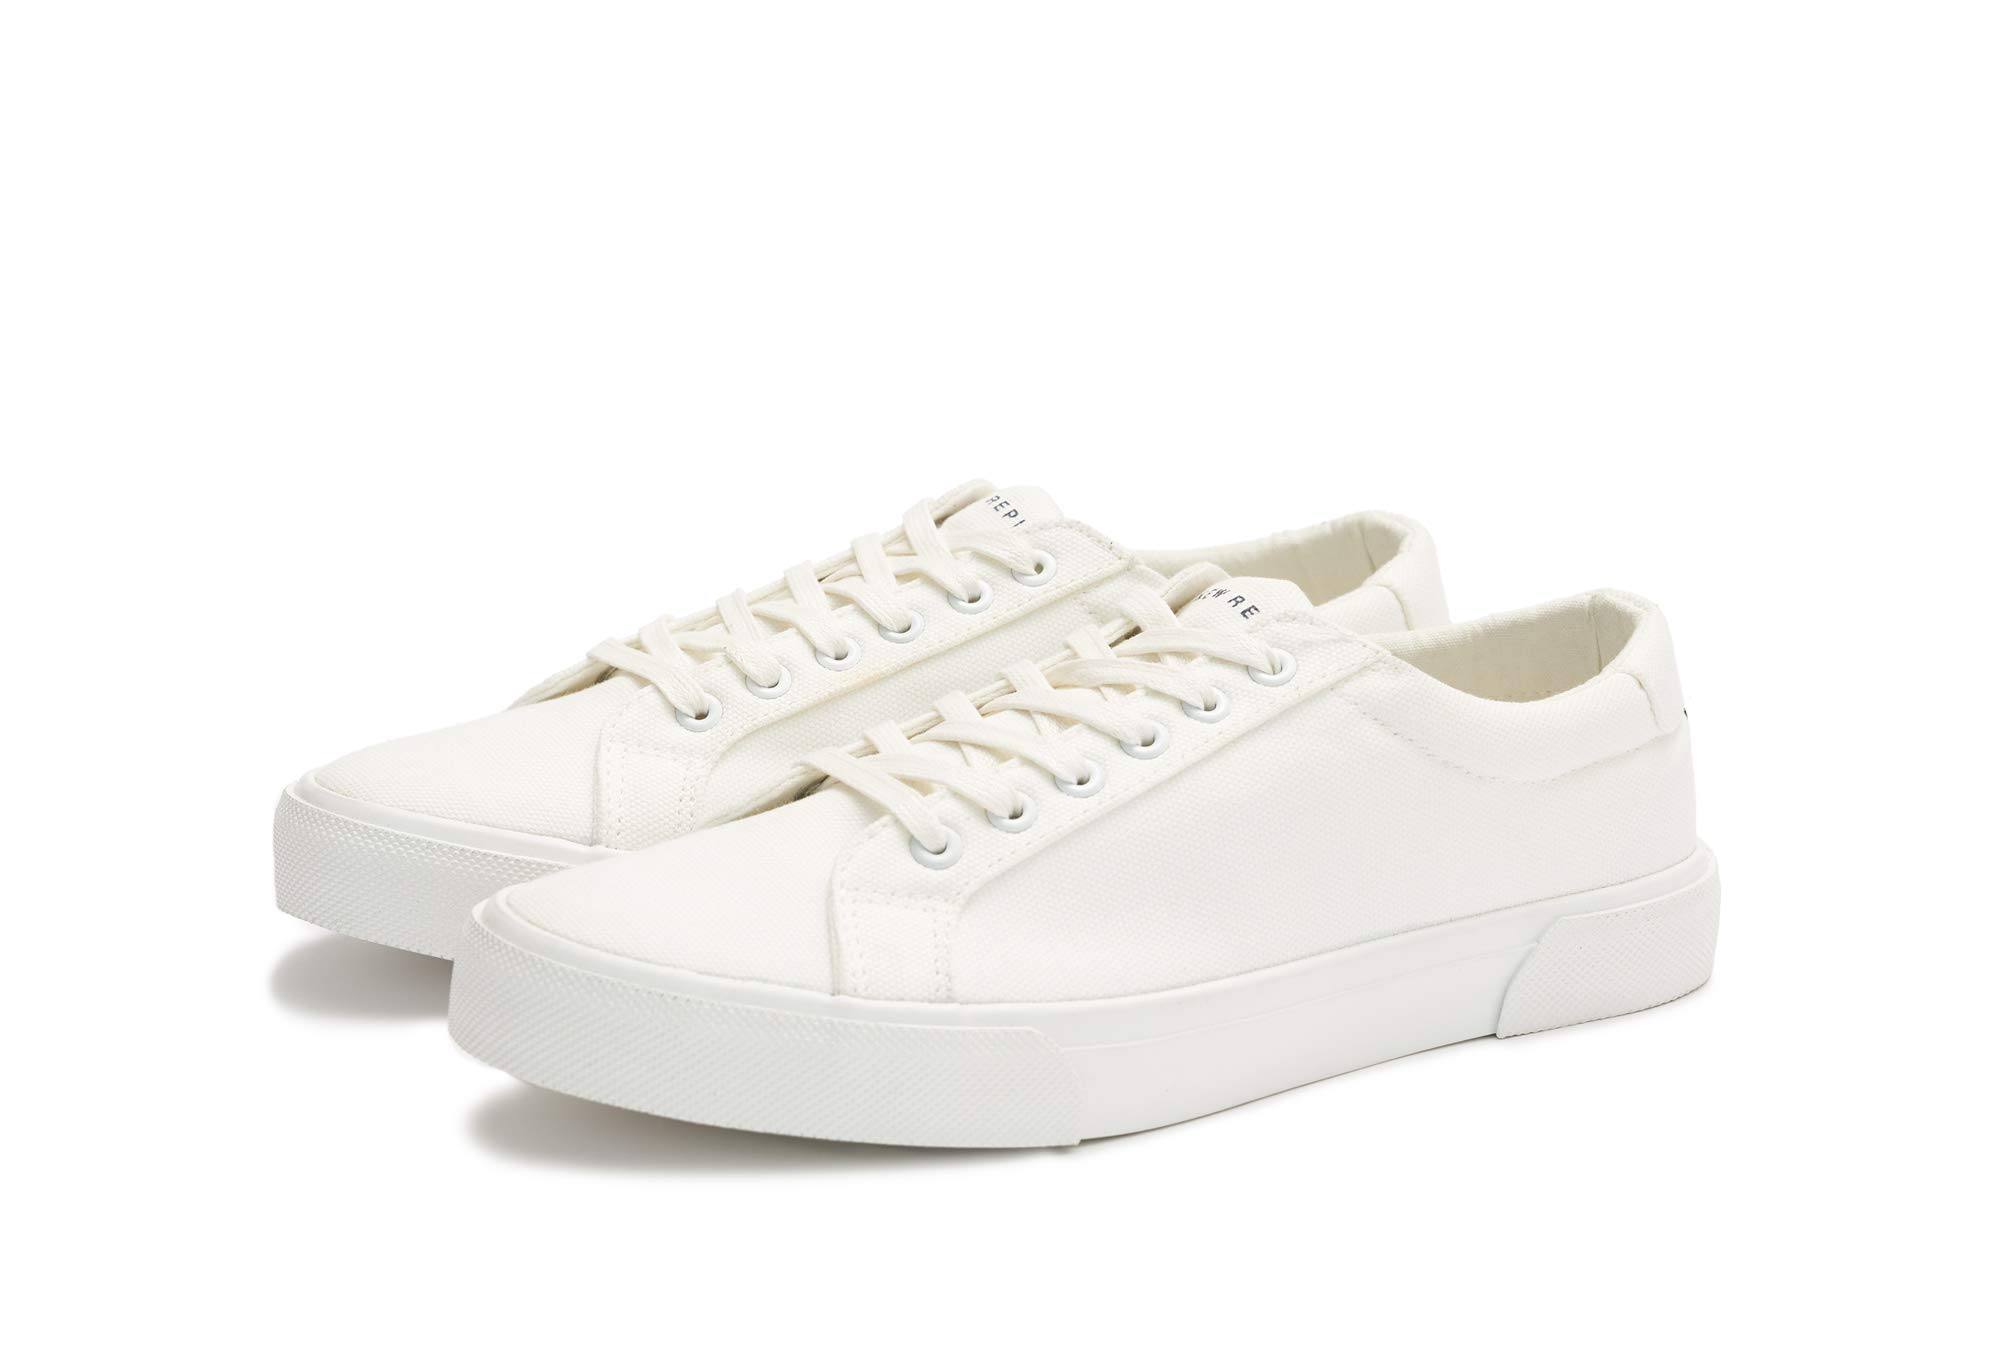 New Republic Men's Ellroy Canvas Sneaker - White (10.5)